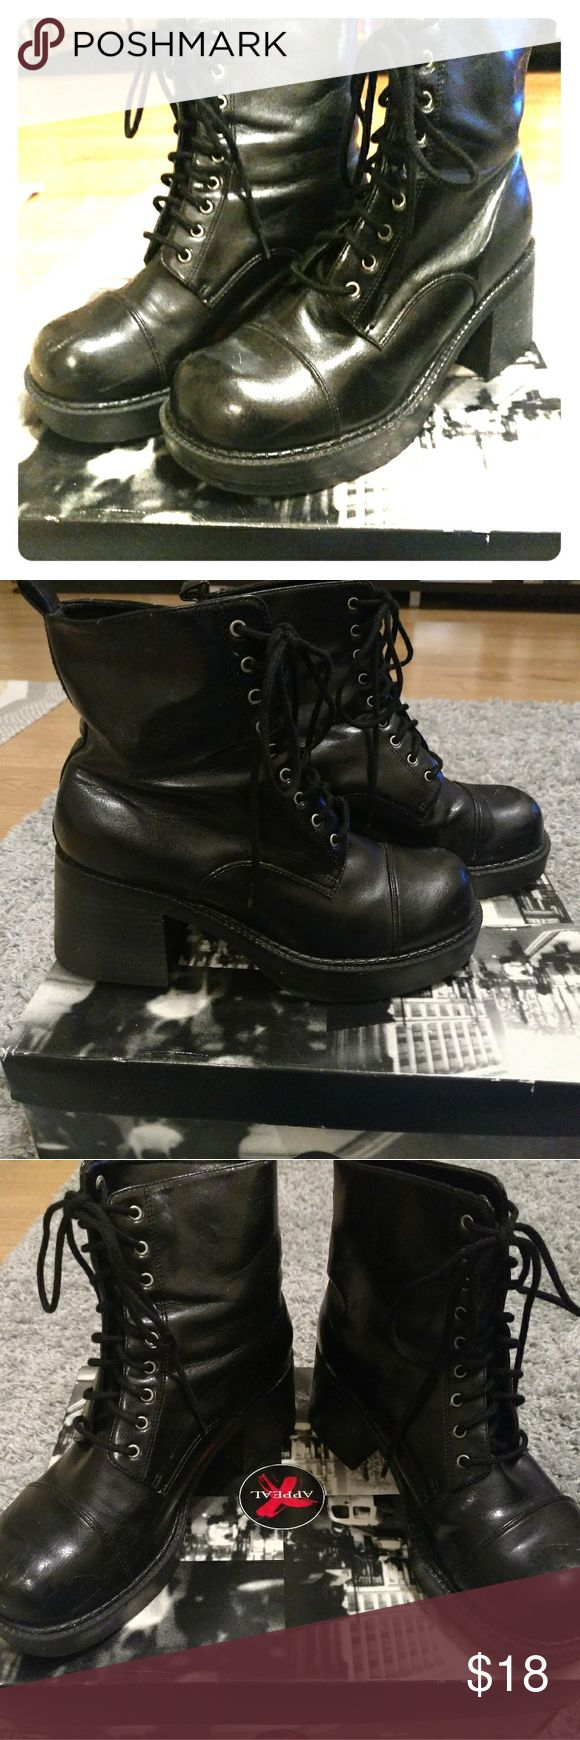 X Appeal Shoes, Penny style combat boots sz 6 1/2 Circa late 1990's, great condition, lightly worn, combat boots style, sz 6 1/2 X Appeal Shoes Combat & Moto Boots